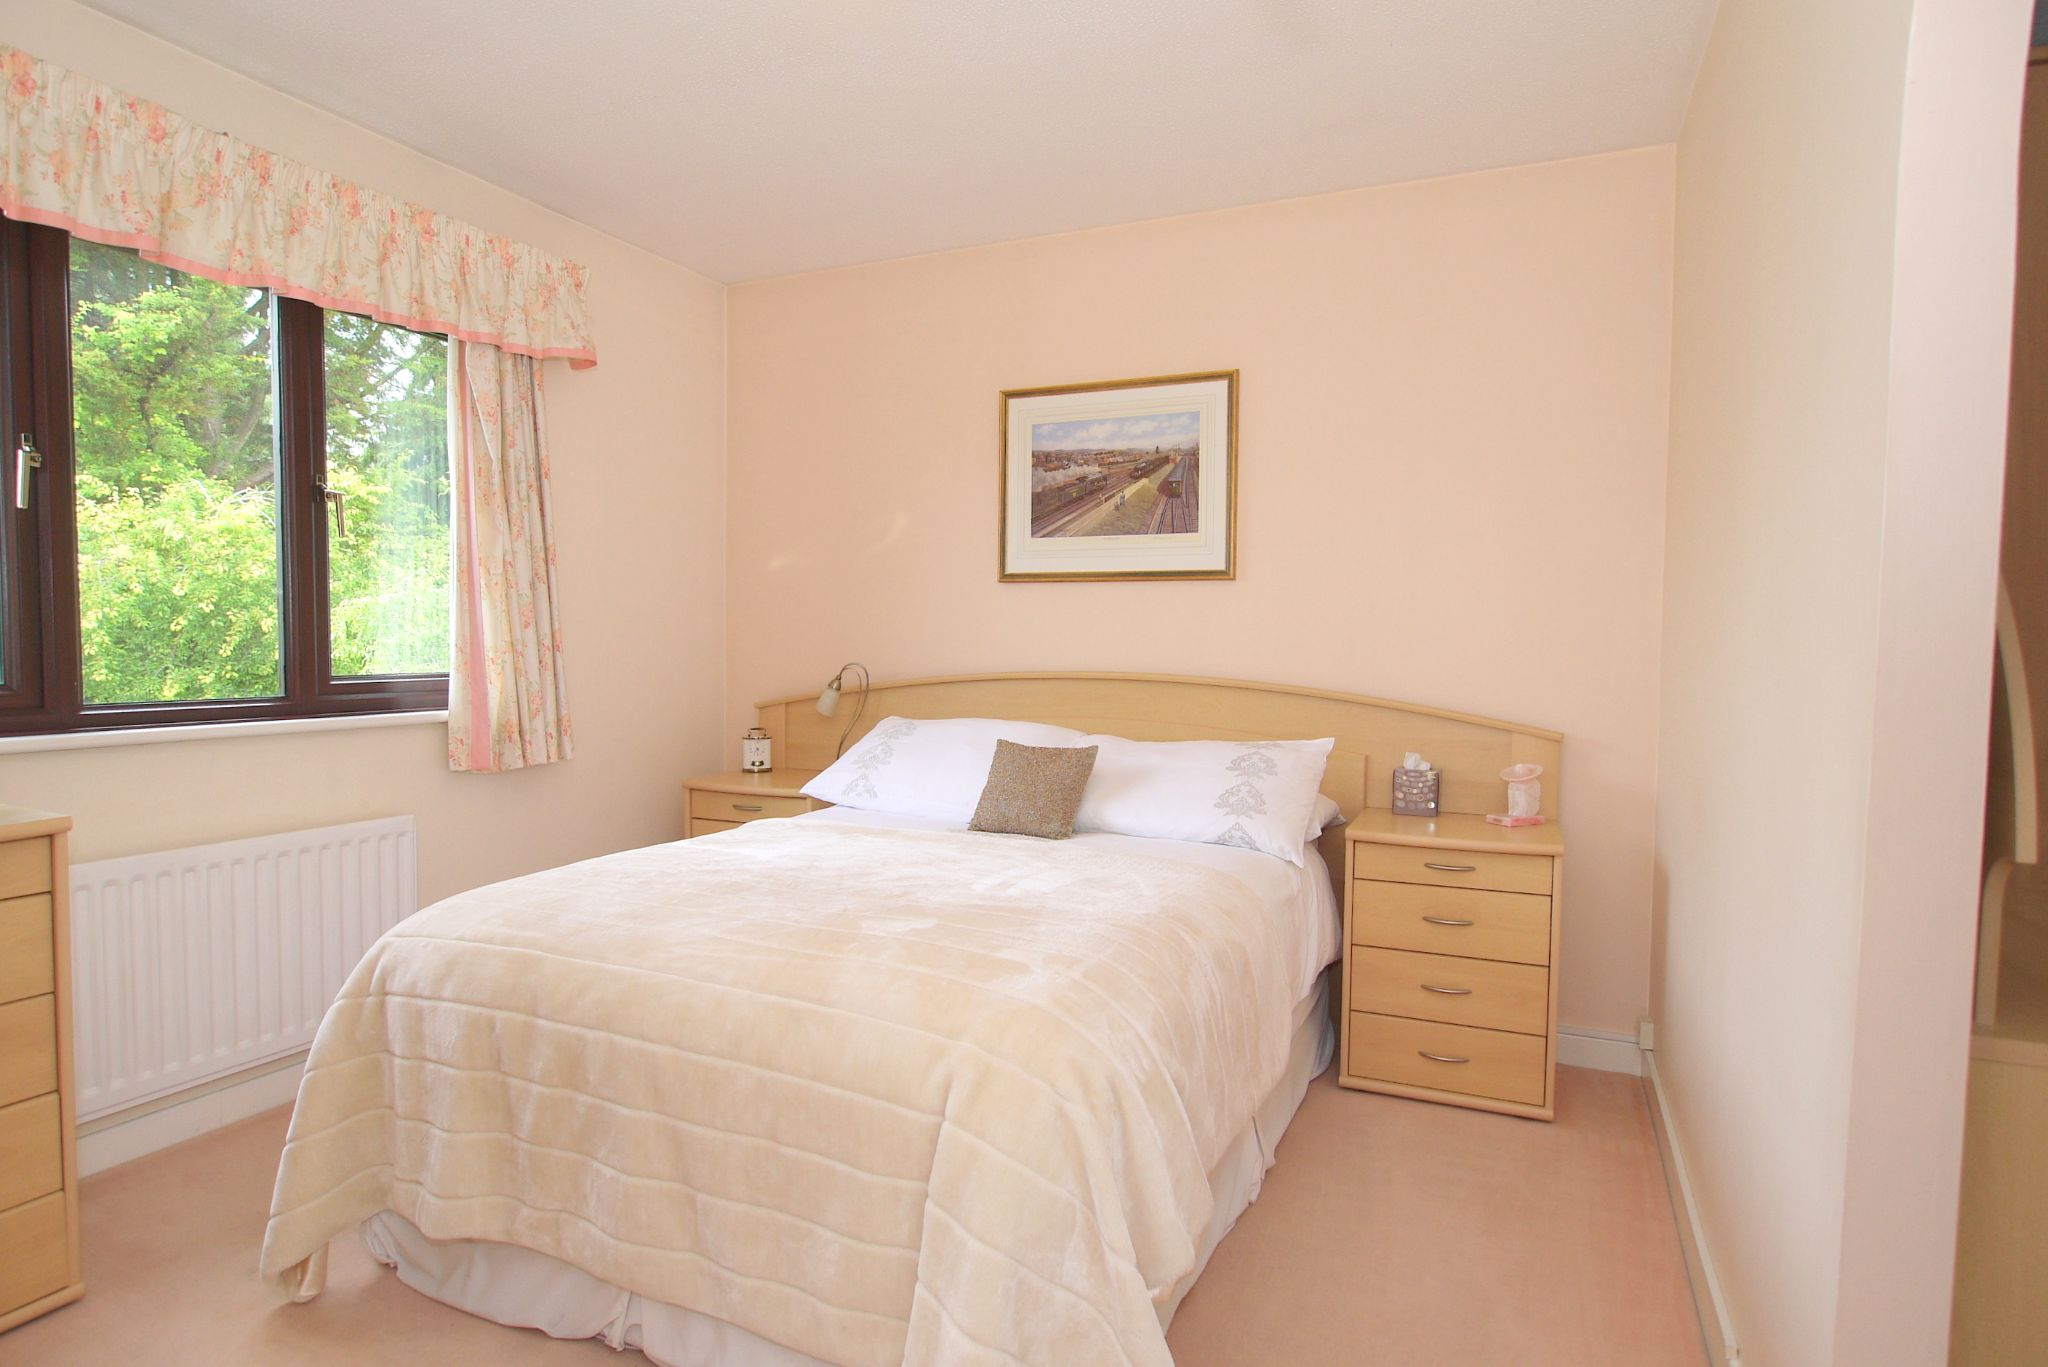 3 bedroom detached house For Sale in Sevenoaks - Photograph 7